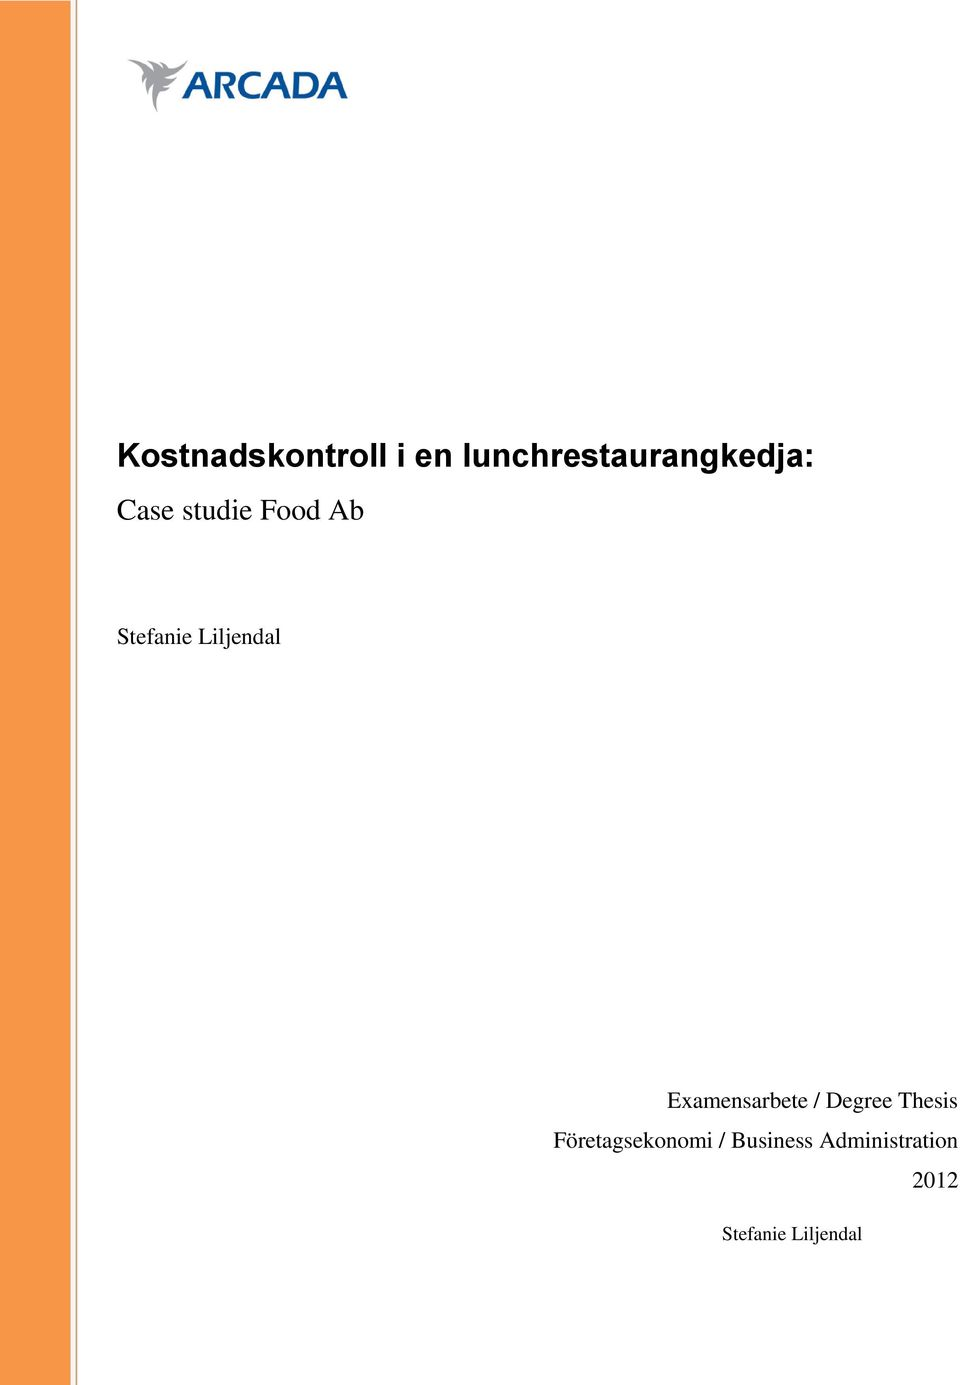 Examensarbete / Degree Thesis